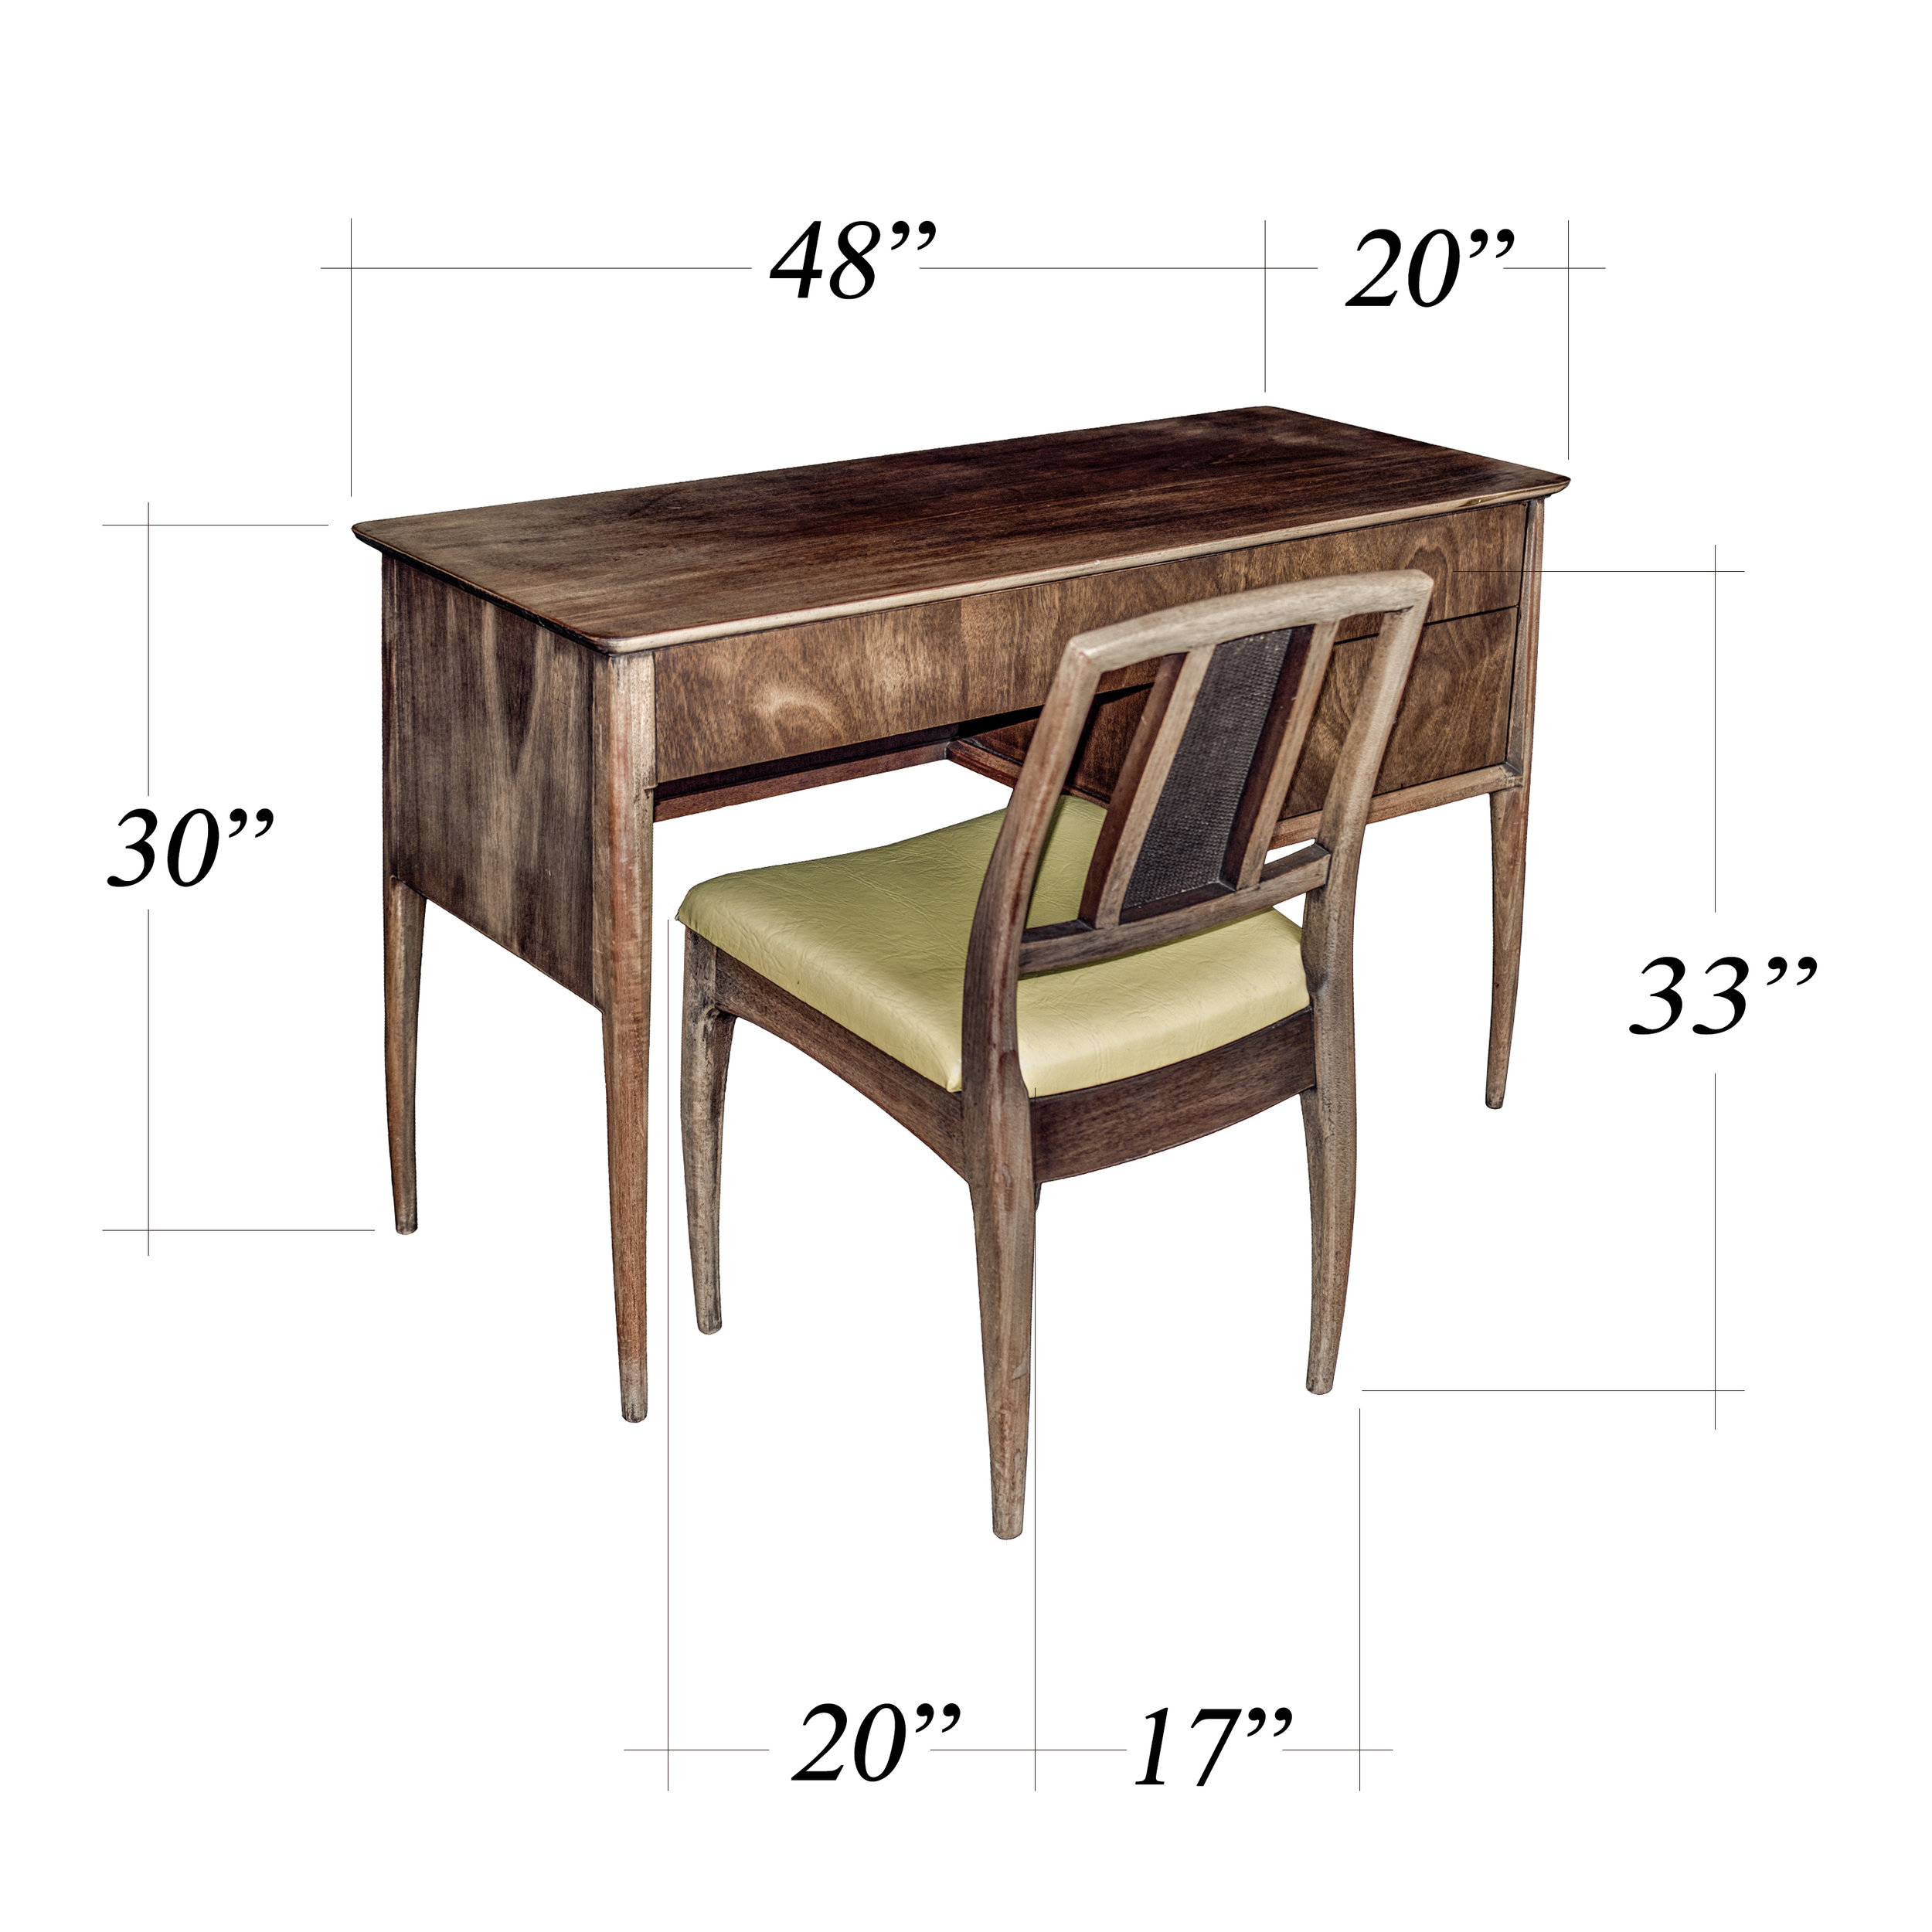 Desk & Chair Dimensions